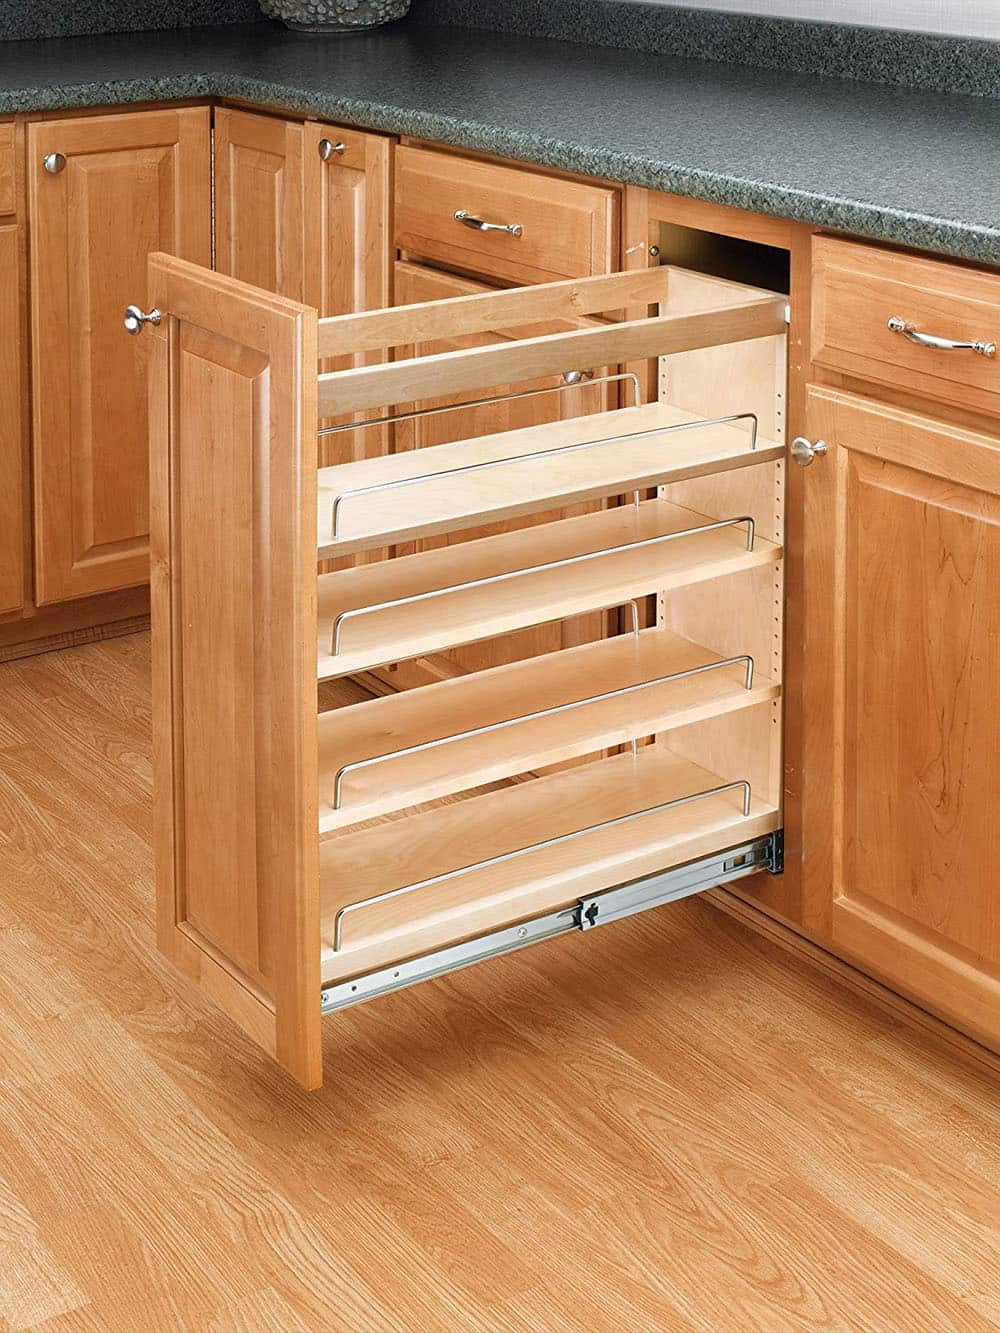 Kitchen base organizers.